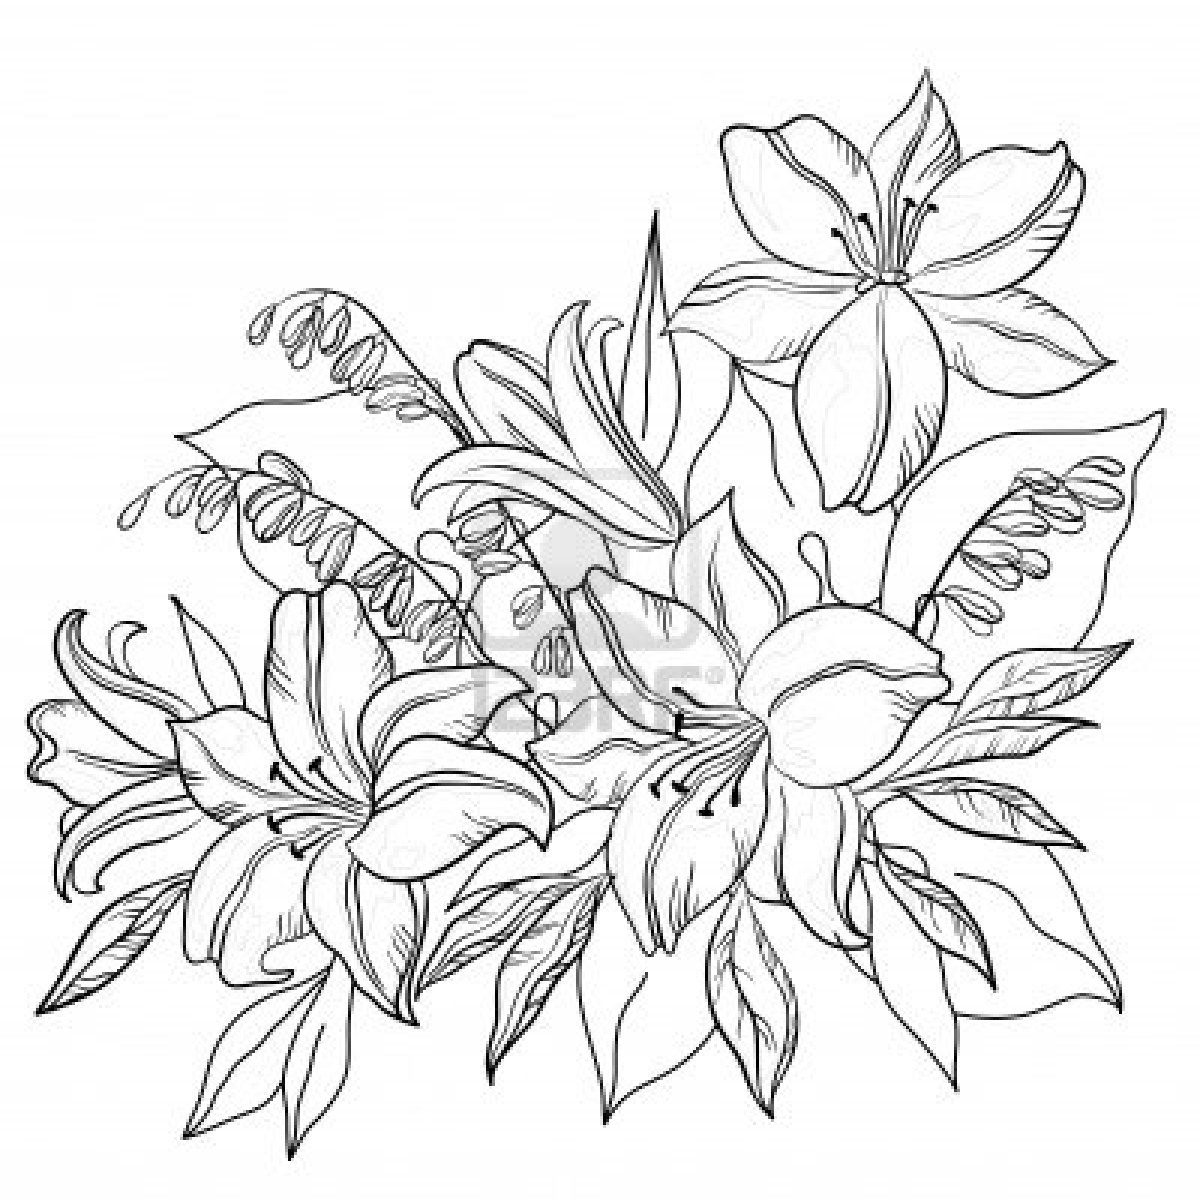 colouring flowers free printable flower coloring pages for kids cool2bkids flowers colouring 1 2